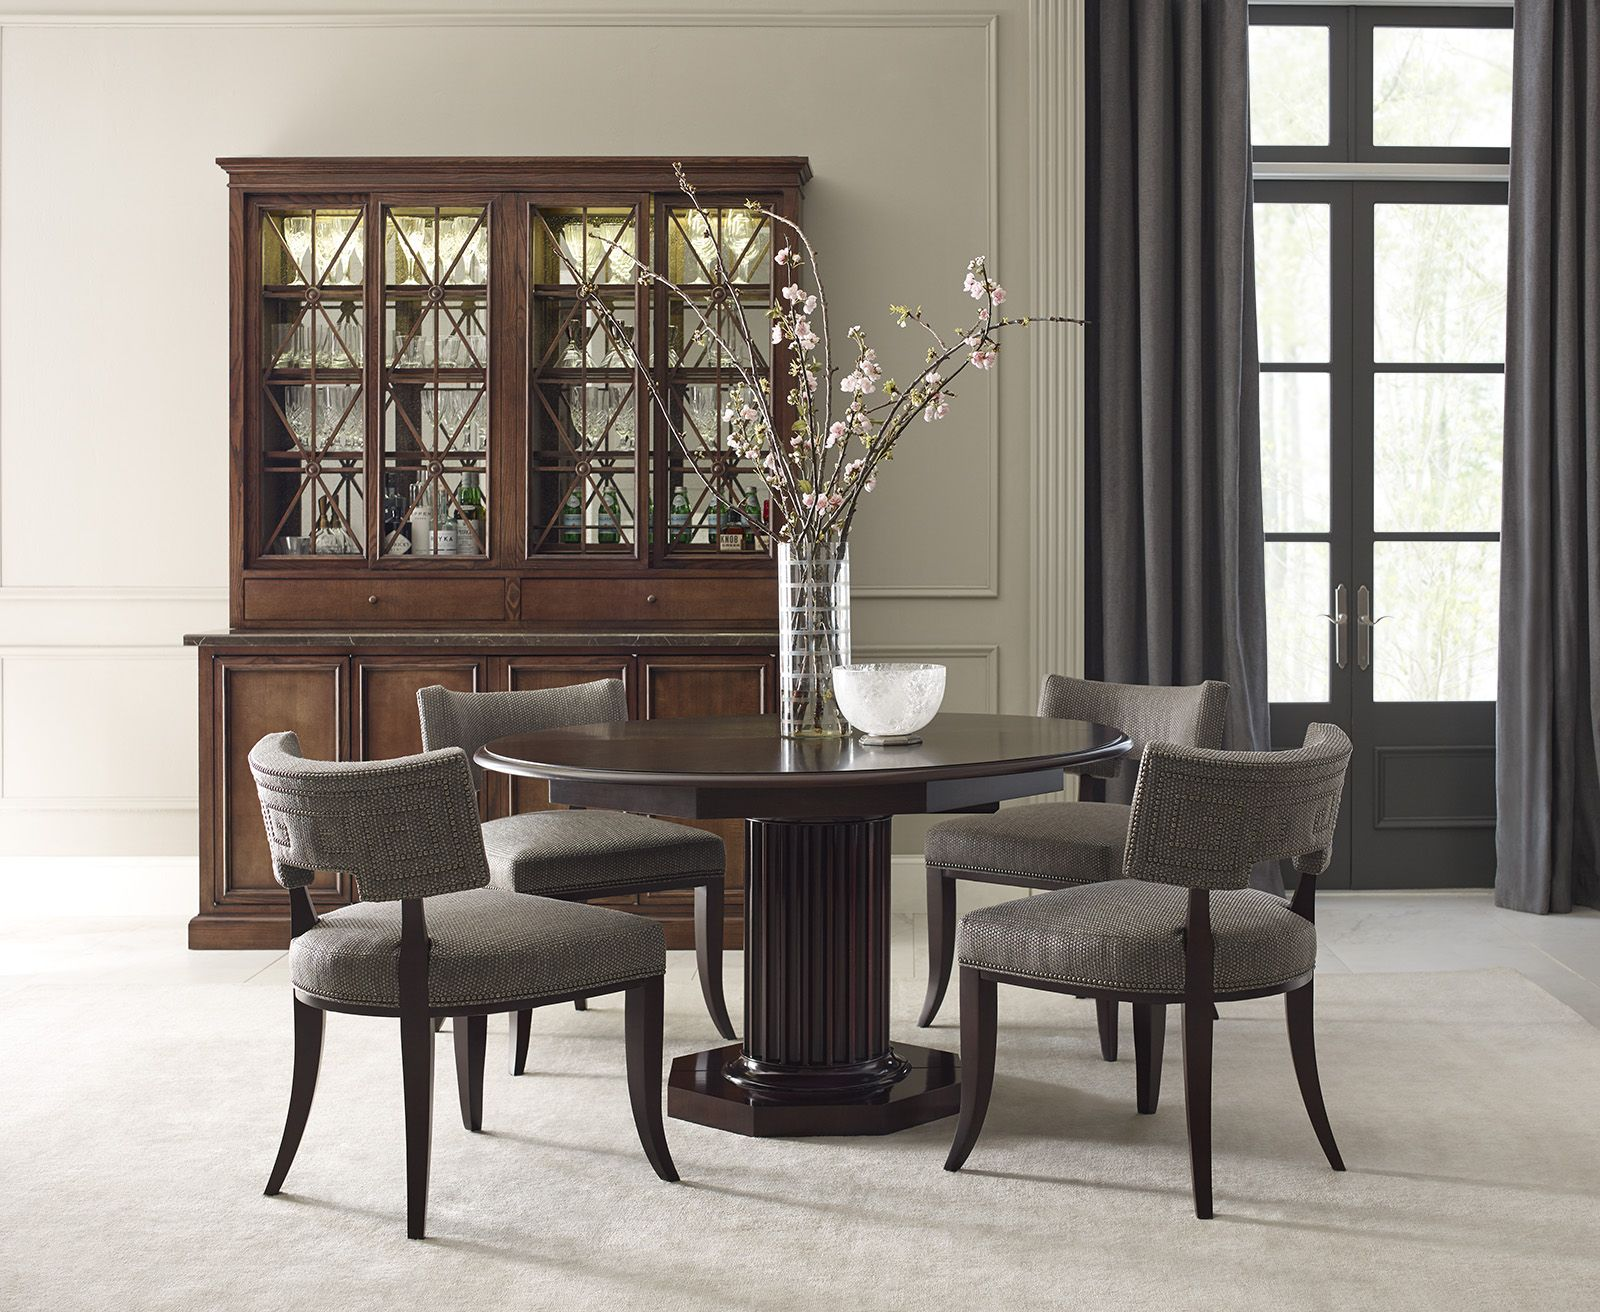 The Saint Giorgio Dining Chairs Eden Roc Table Rock Crystal Bowl And Meurice